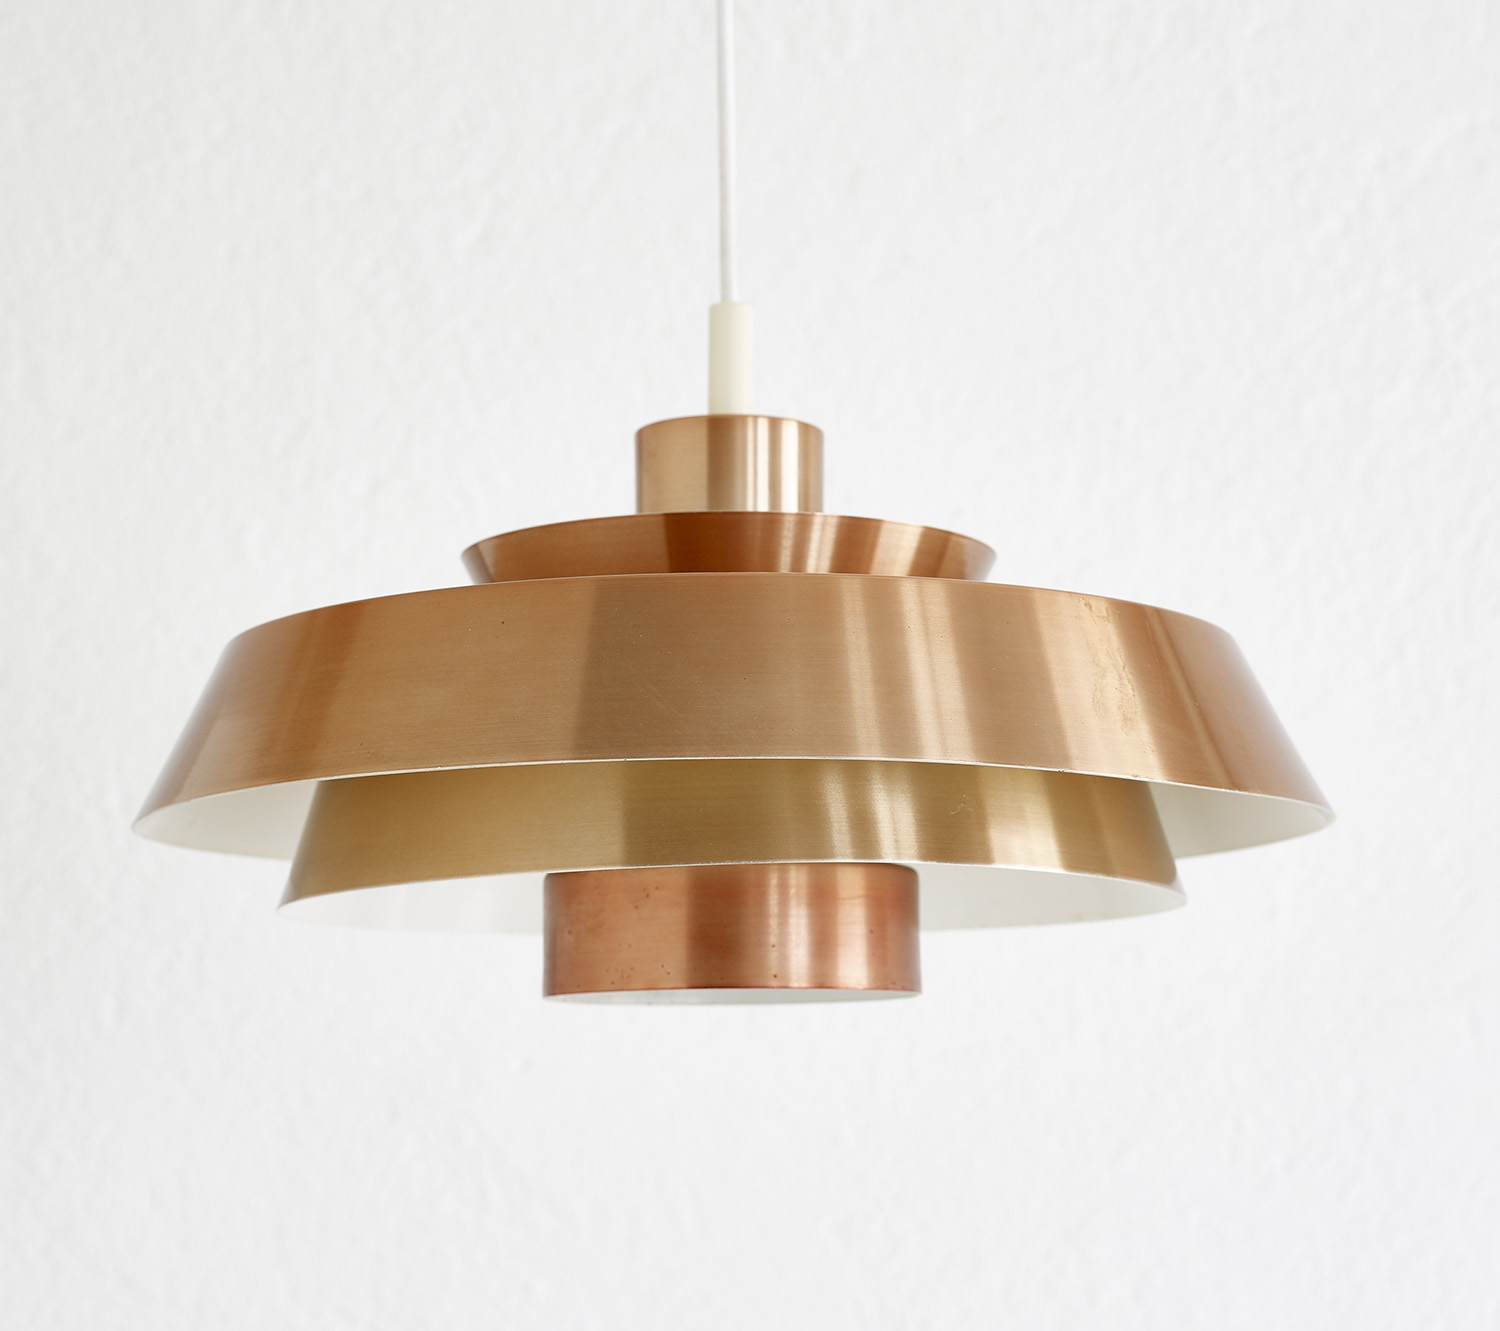 nova-copper-suspension-by-jo-hammerborg-image-01